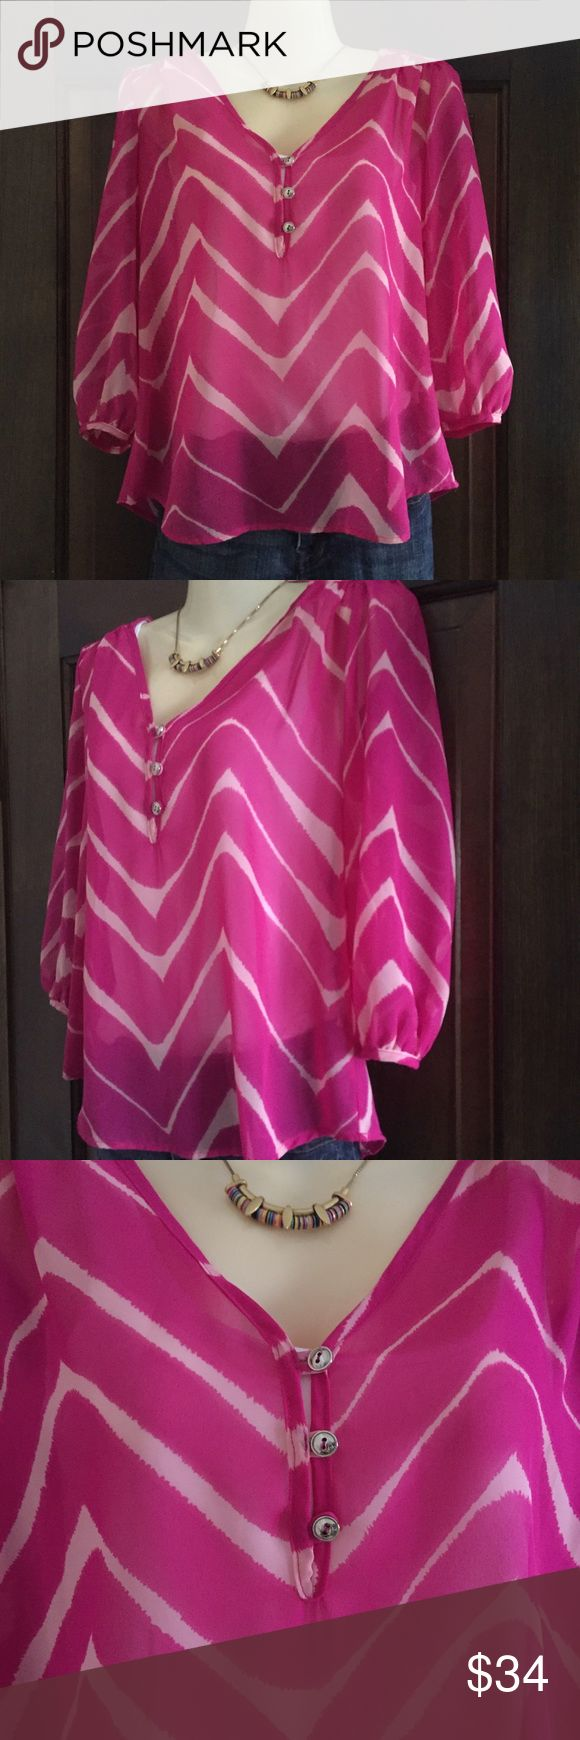 "Wavy Chevron Print 3/4 Sleeve Blouse Fabulous, flirty, flowy, flattering, and forgiving, perfectly describe this pretty top.  Work or play, night or day, this will be a great addition to your summer wardrobe.  Pretty wavy hot pink and light pink chevron pattern.  Sheer, lightweight fabric with 3 silver button accentuating the v-neckline, rounded neckline, and 3/4 sleeves. Stitch Fix purchase, washed, but not worn.  Approx. measurements: 19"" bust from underarm, 17"" sleeve, 21"" length.  100%…"